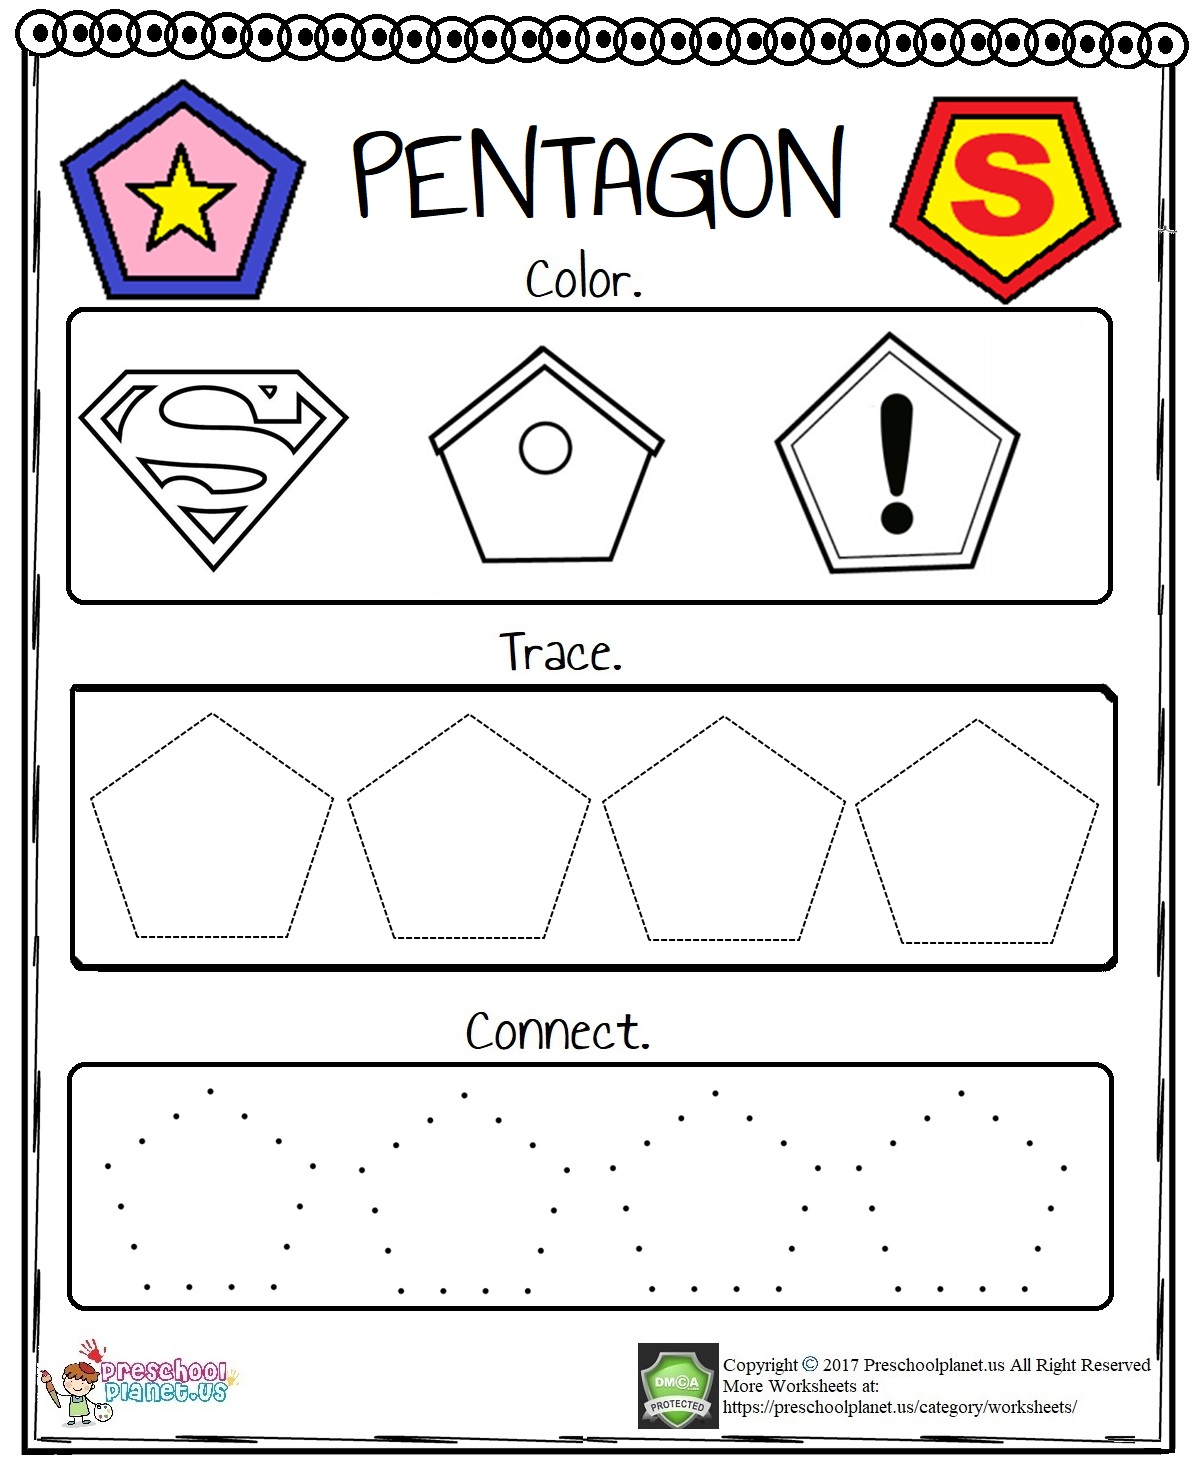 Pentagon-Worksheet